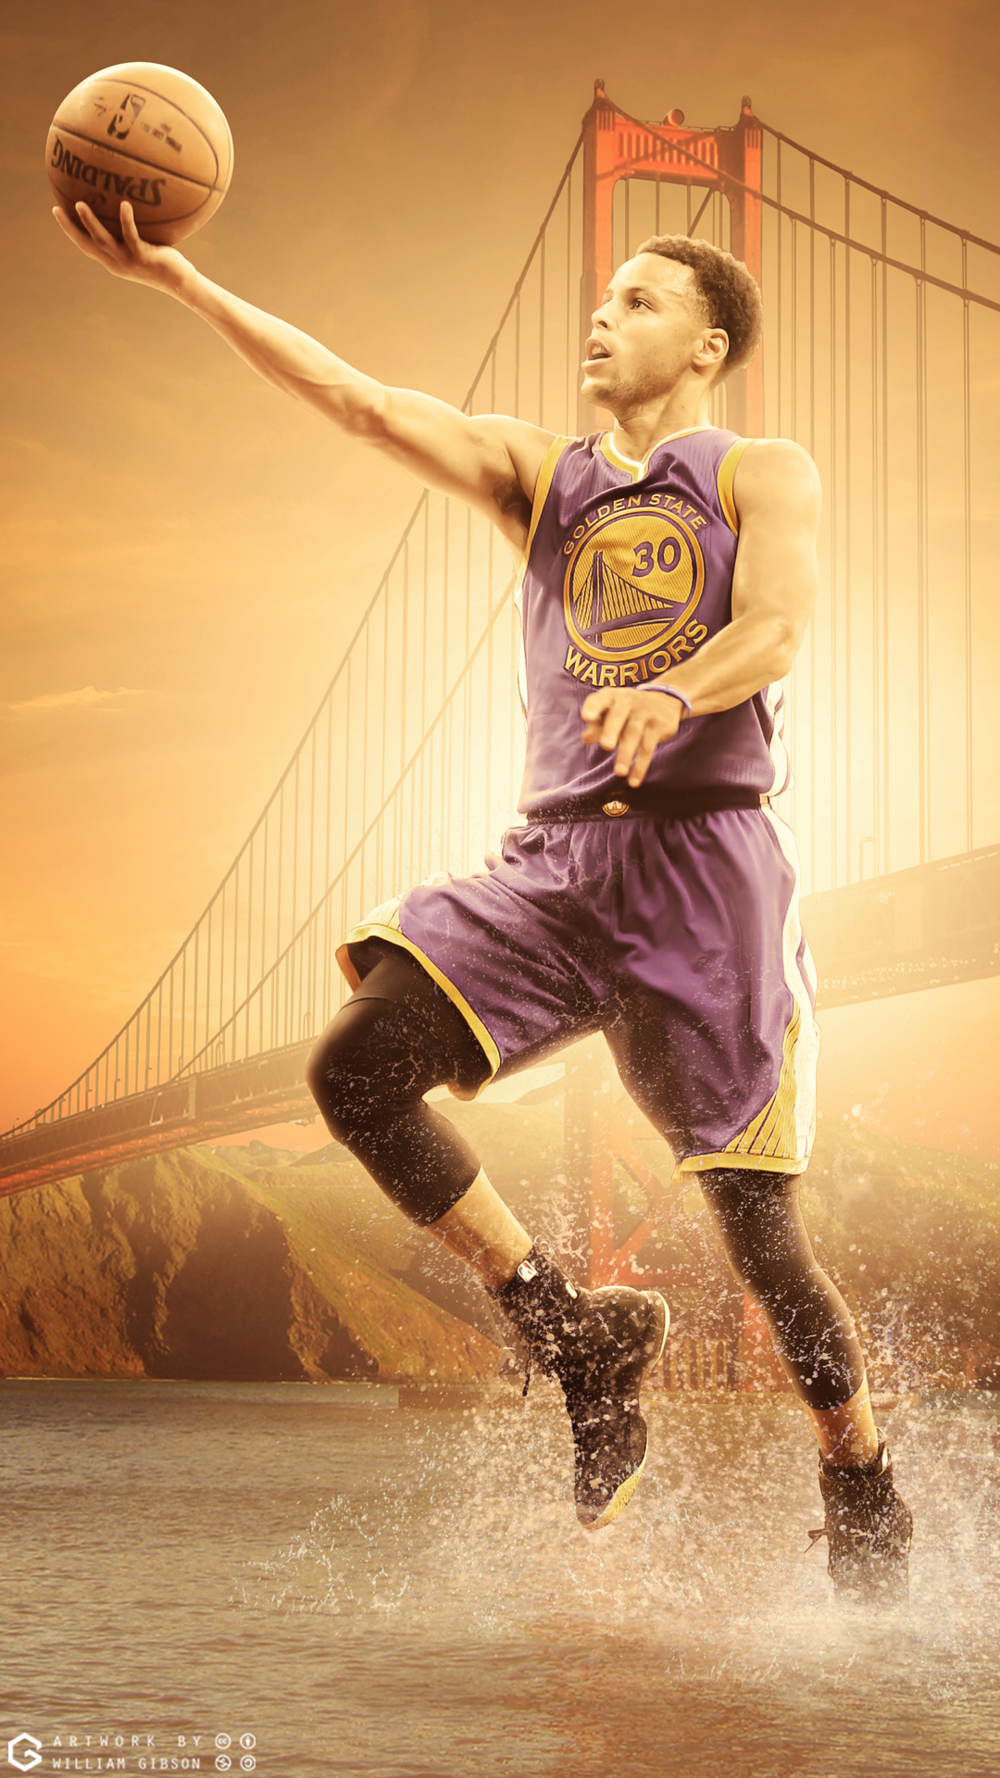 STEPH CURRY IPHONE 6 PLUS WALLPAPER